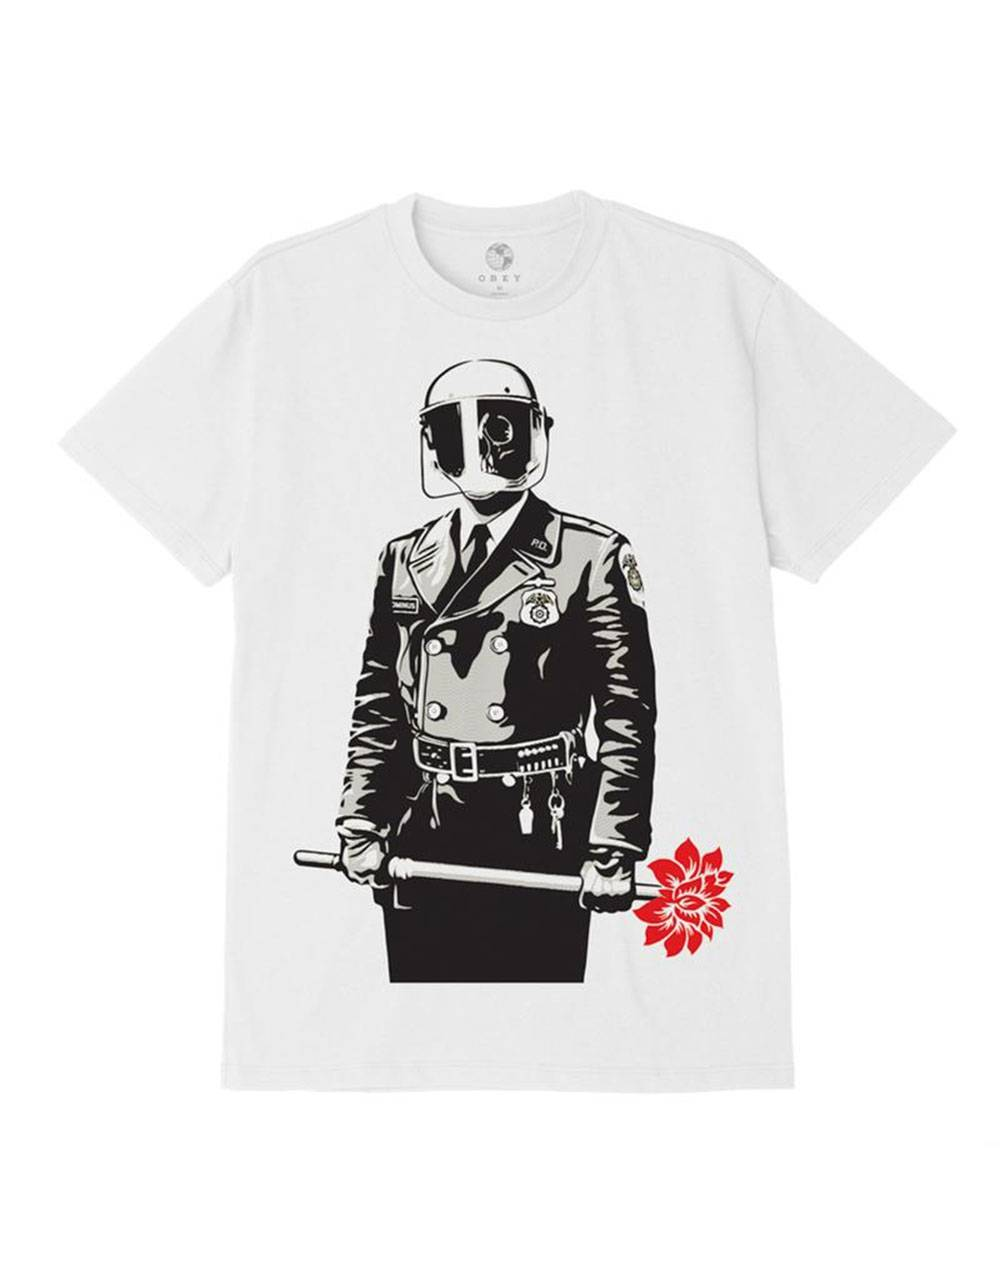 Obey sadistic florist sustainable tee - cream obey T-shirt 45,00 €